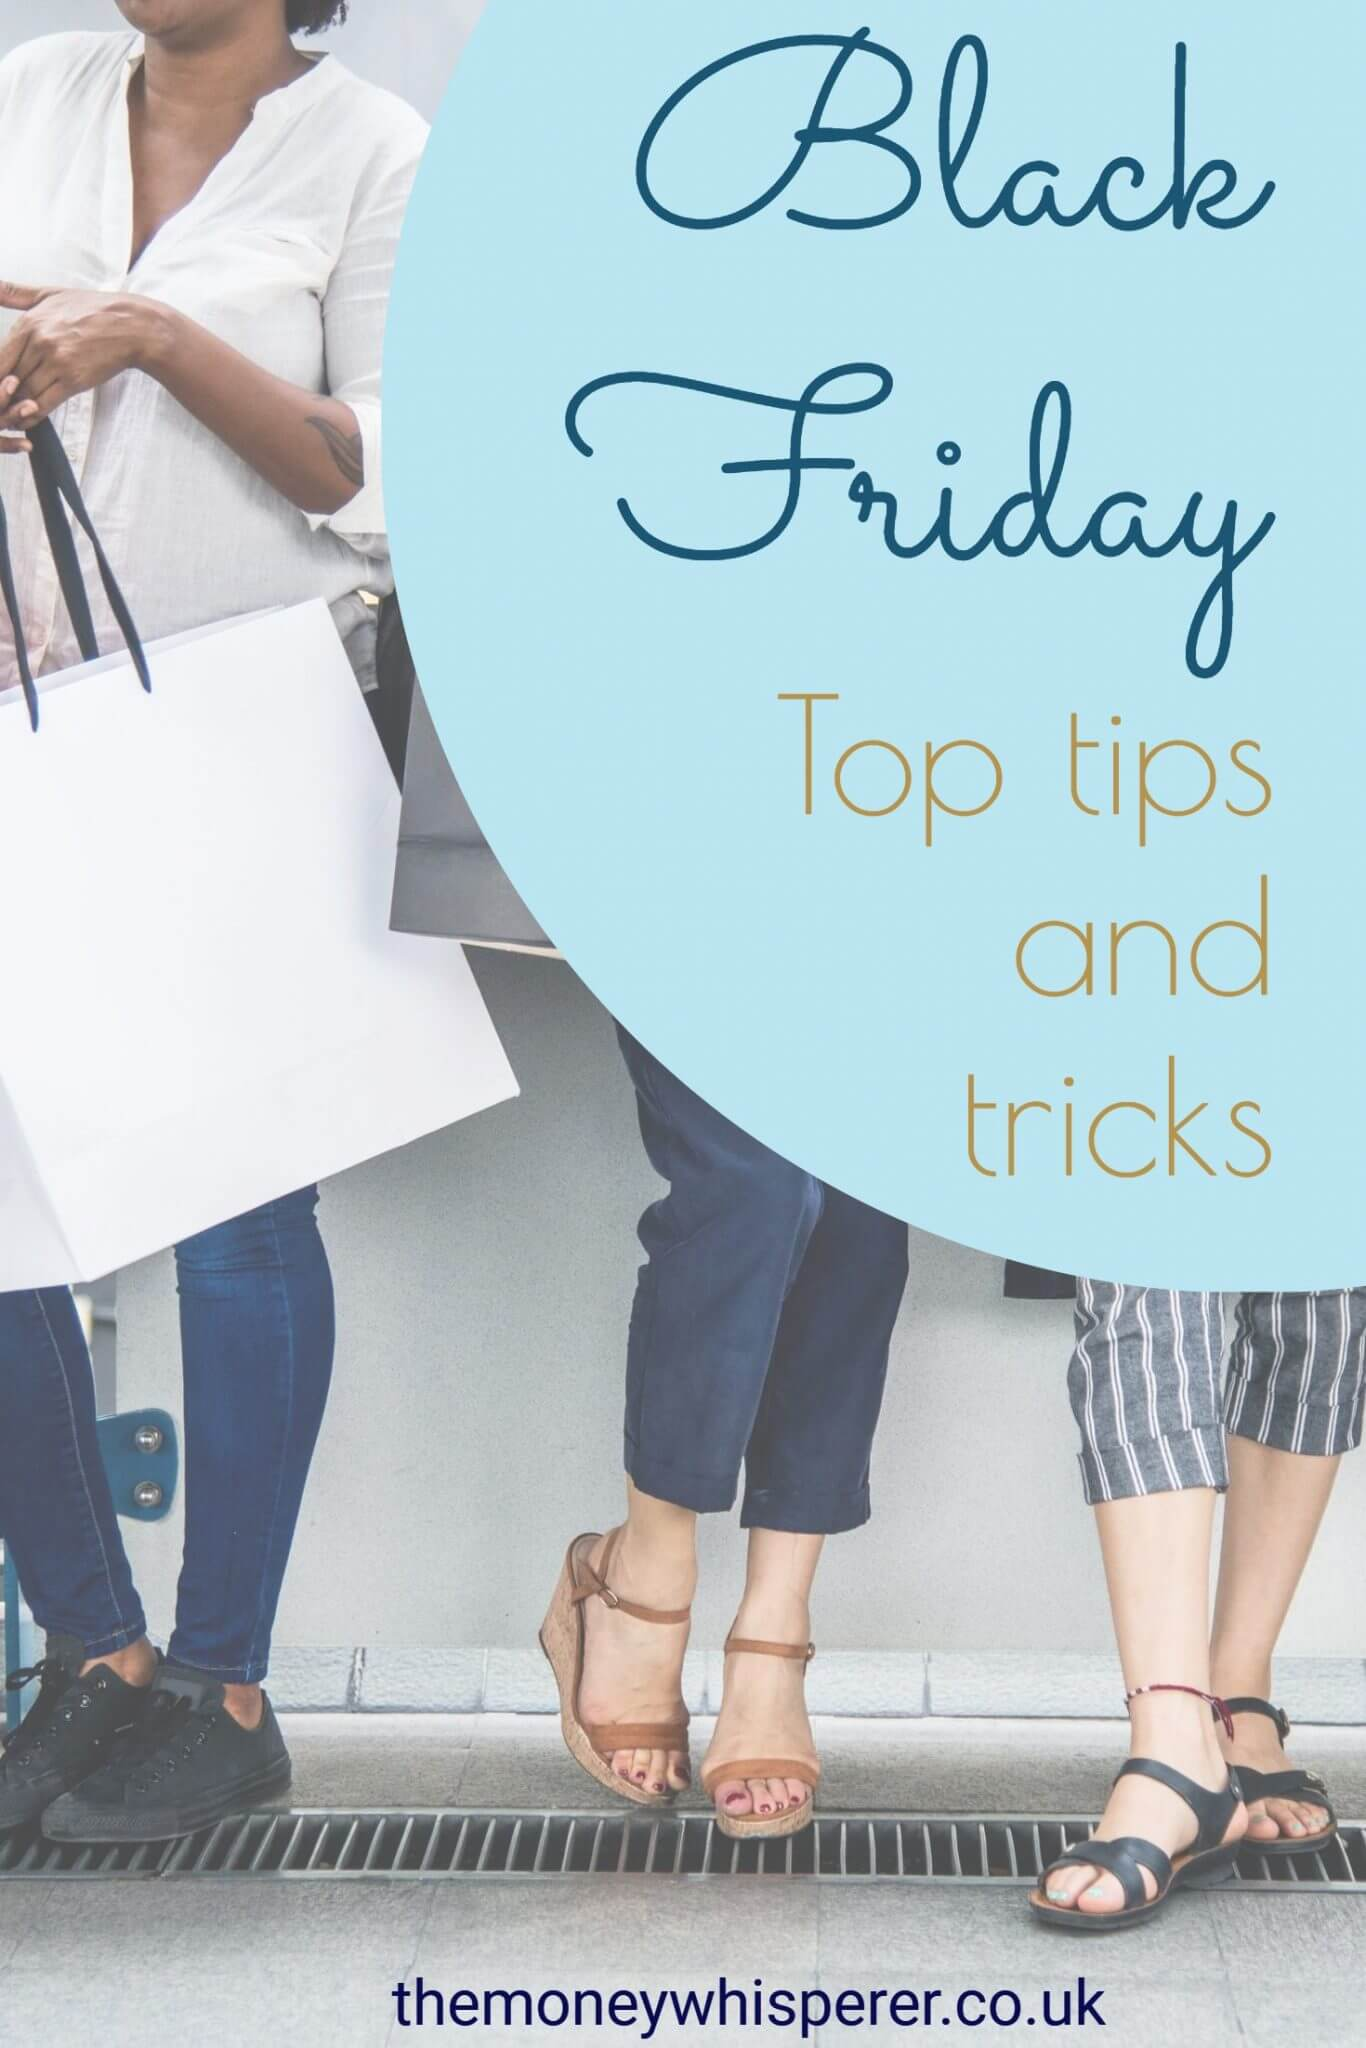 Black Friday : Whilst it is the time of year to grab a bargain, you need to get savvy and shop smart to avoid getting sucked in by the hype. Here's how with my Black Friday top tips and tricks #blackfriday #bargainshopping